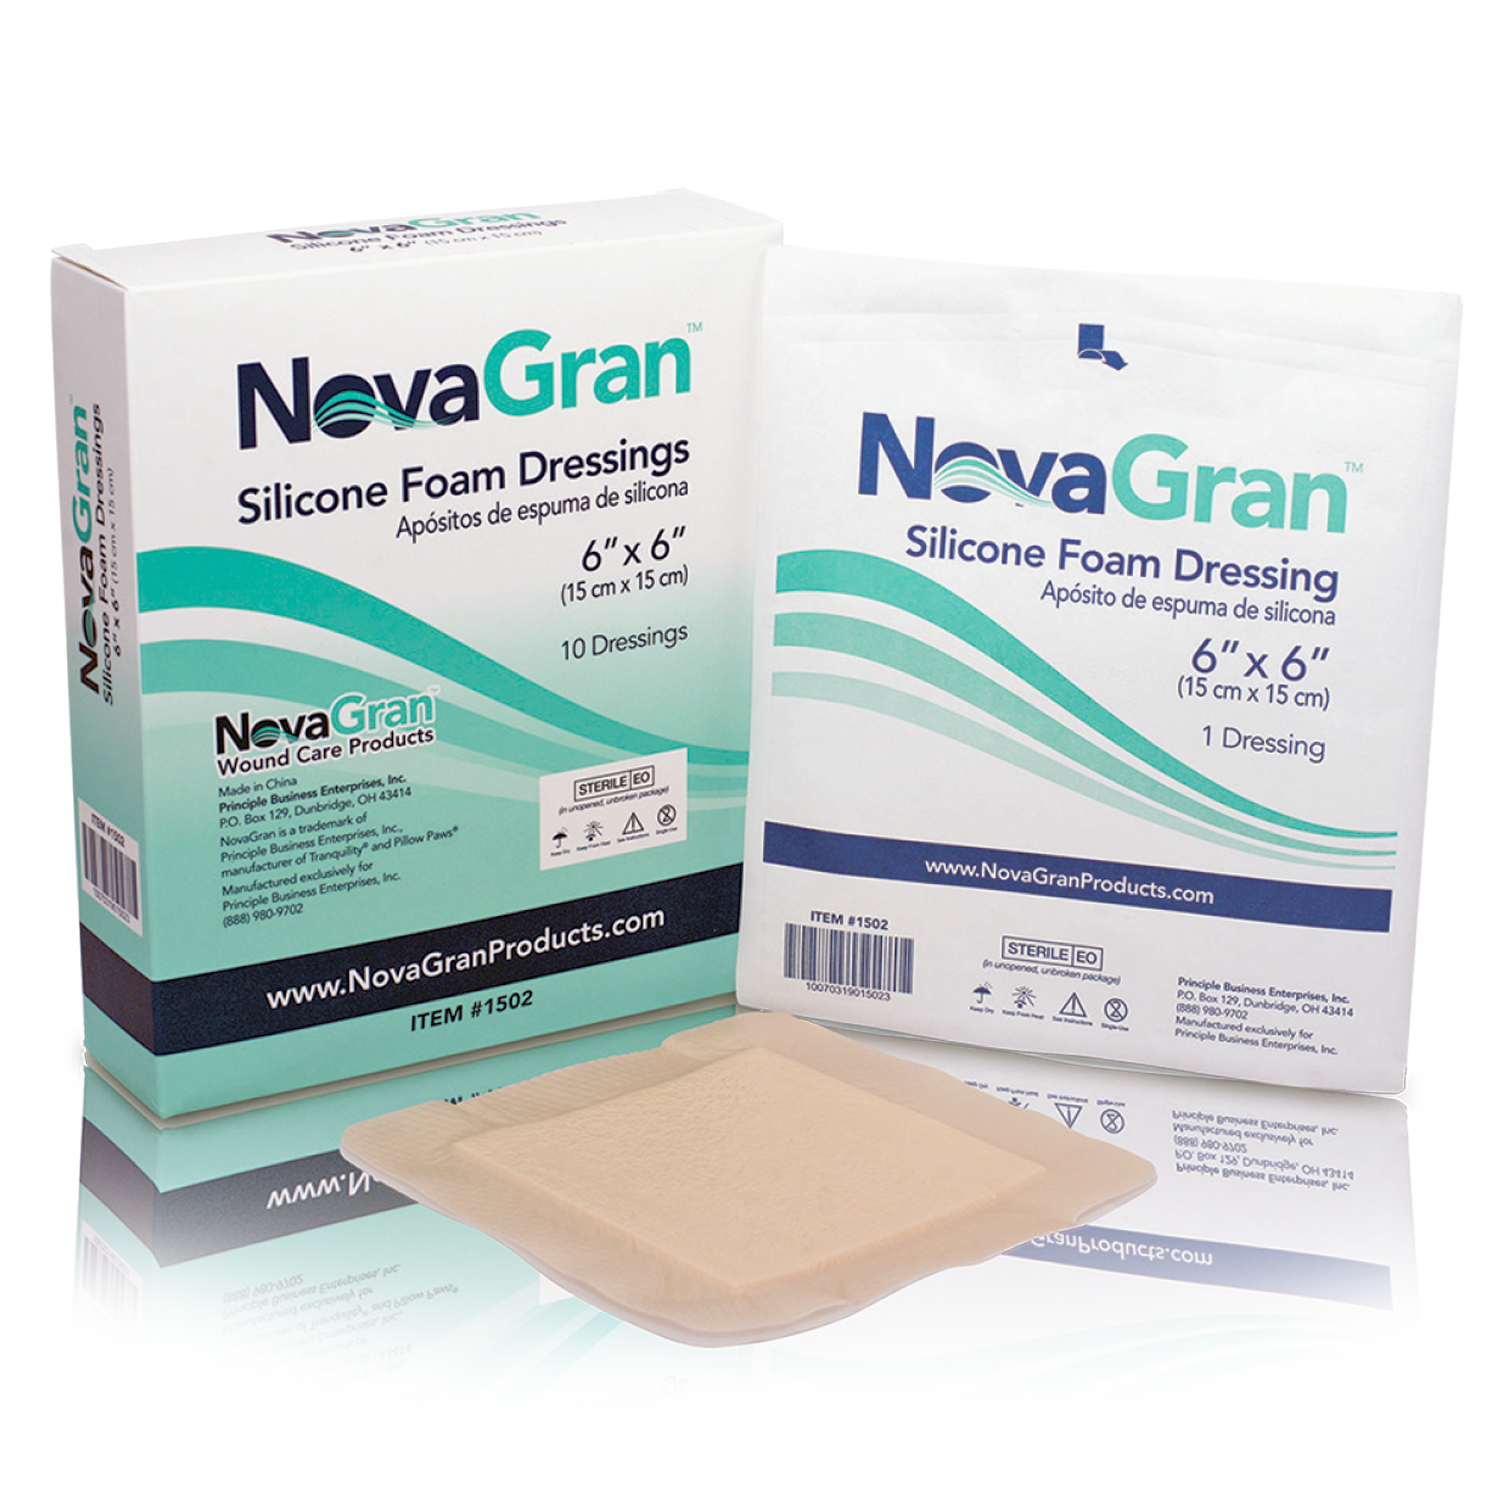 NovaGran Silicone Foam Dressings